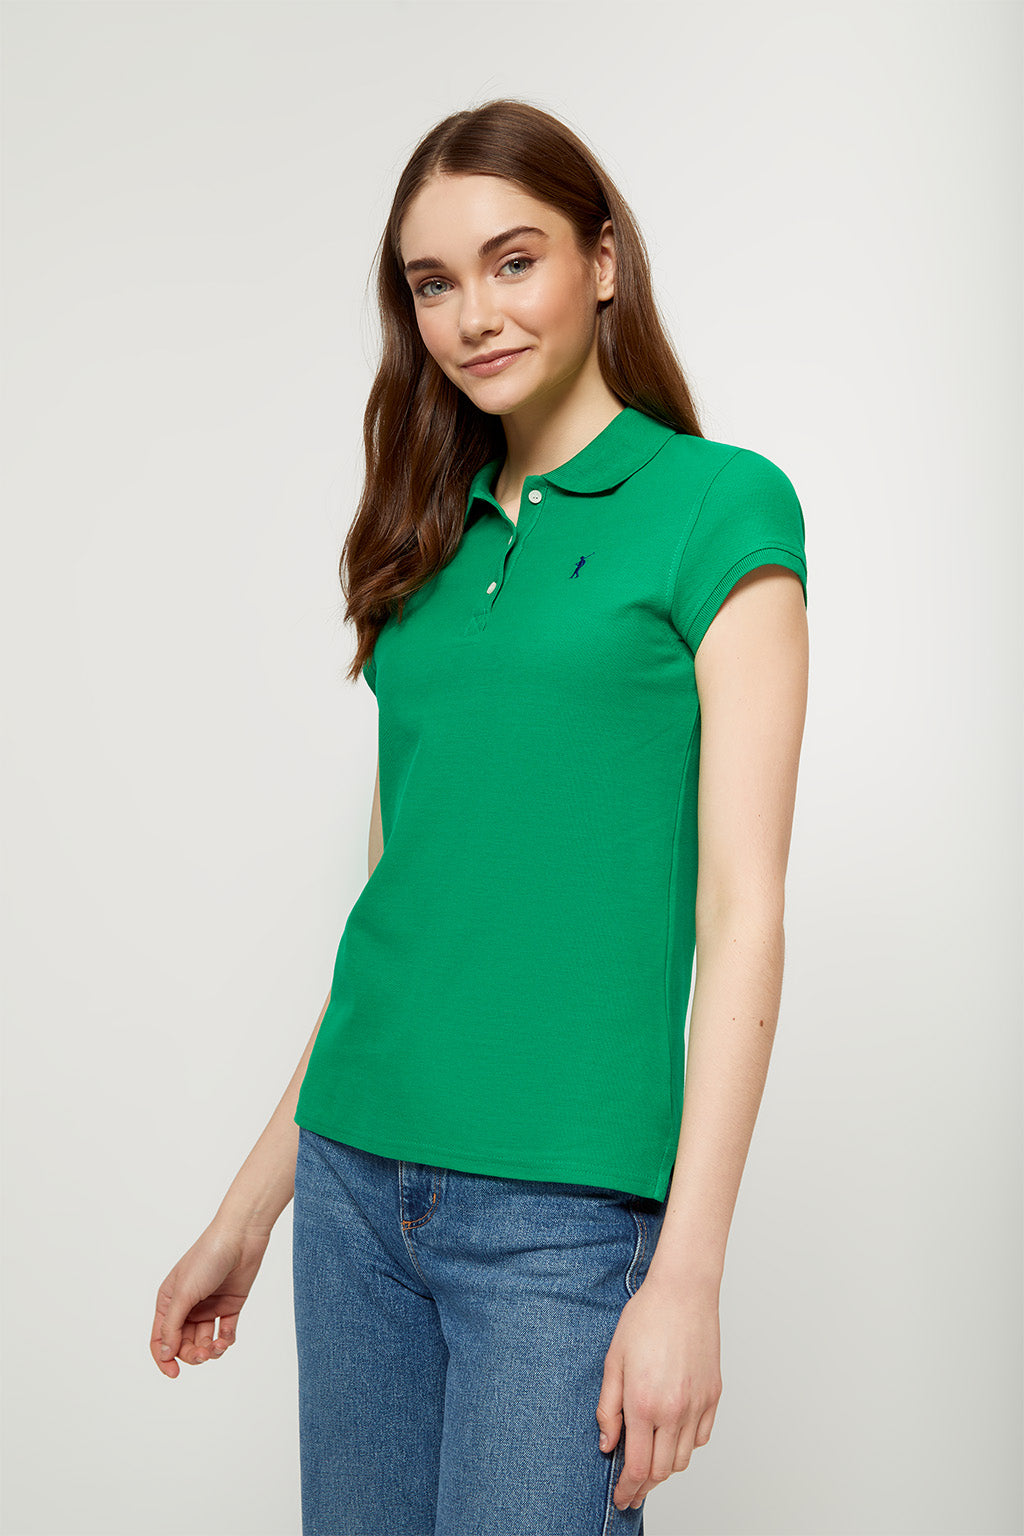 Tropical green polo shirt with embroidered logo